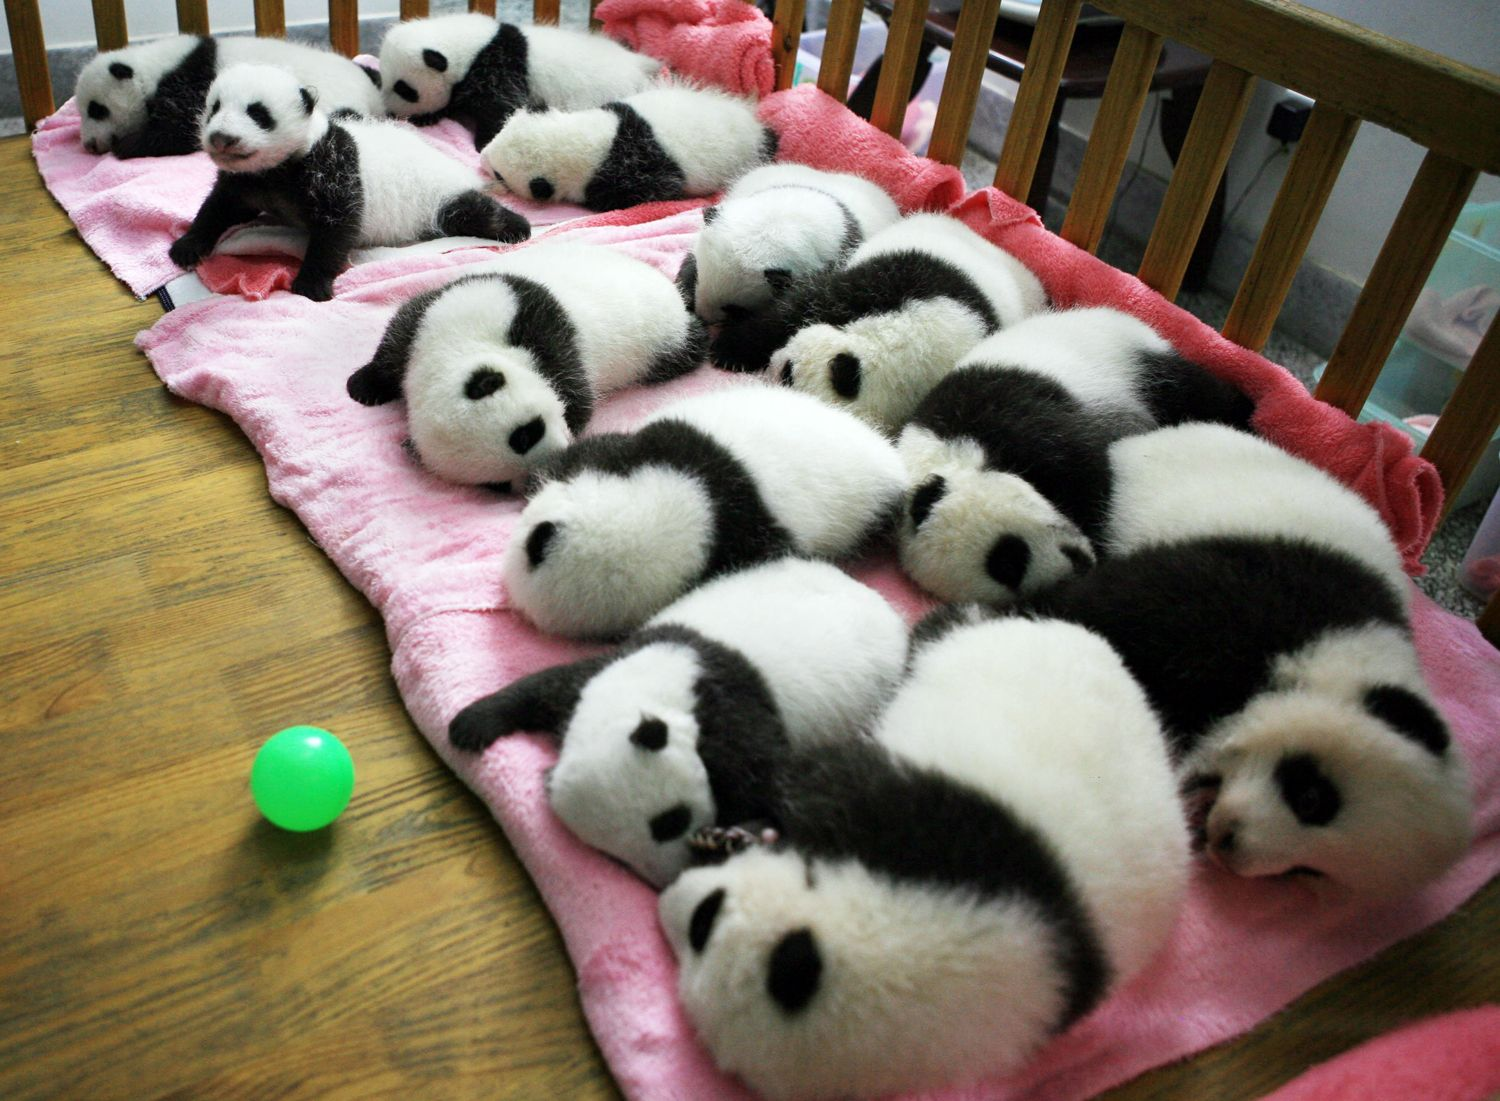 A group of giant panda cubs nap at a nursery in the research base of the Giant Panda Breeding Centre in Chengdu, in southwest China's Sichuan province on Sept. 26. China has launched its once-a-decade panda census, trying to determine how many of the endangered animals live in the wild amid efforts to boost numbers. The census -- the fourth since it was first launched in the 1970s -- is also expected to ascertain pandas' living conditions, ages and any change in habitat.